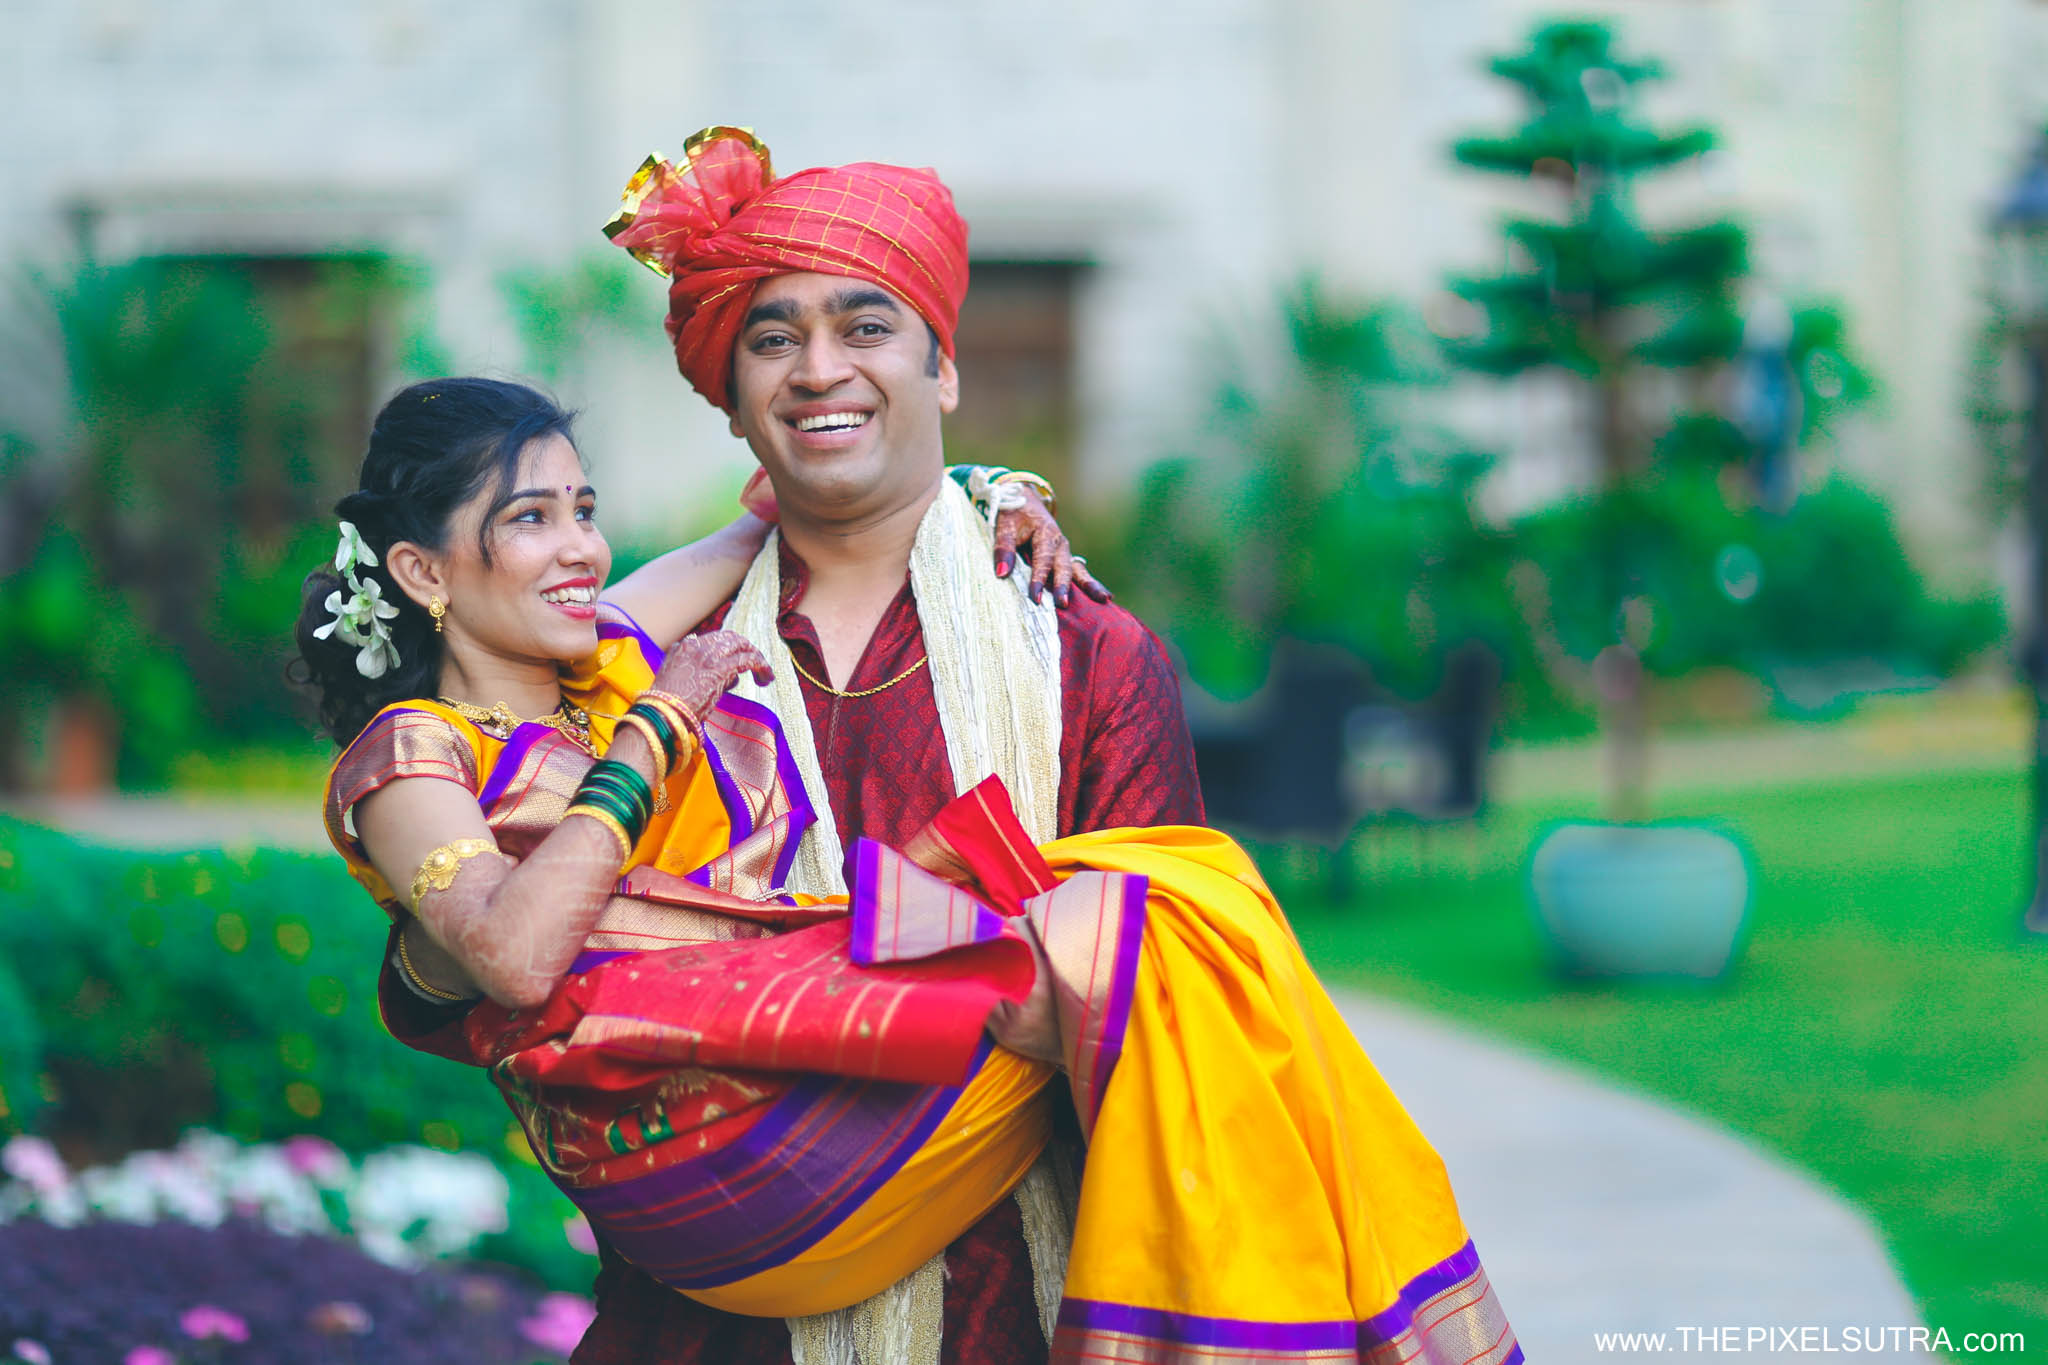 The Pixel Sutra Nachiket x Priyanka Candid Wedding photographer Mumbai Best  (52).jpg